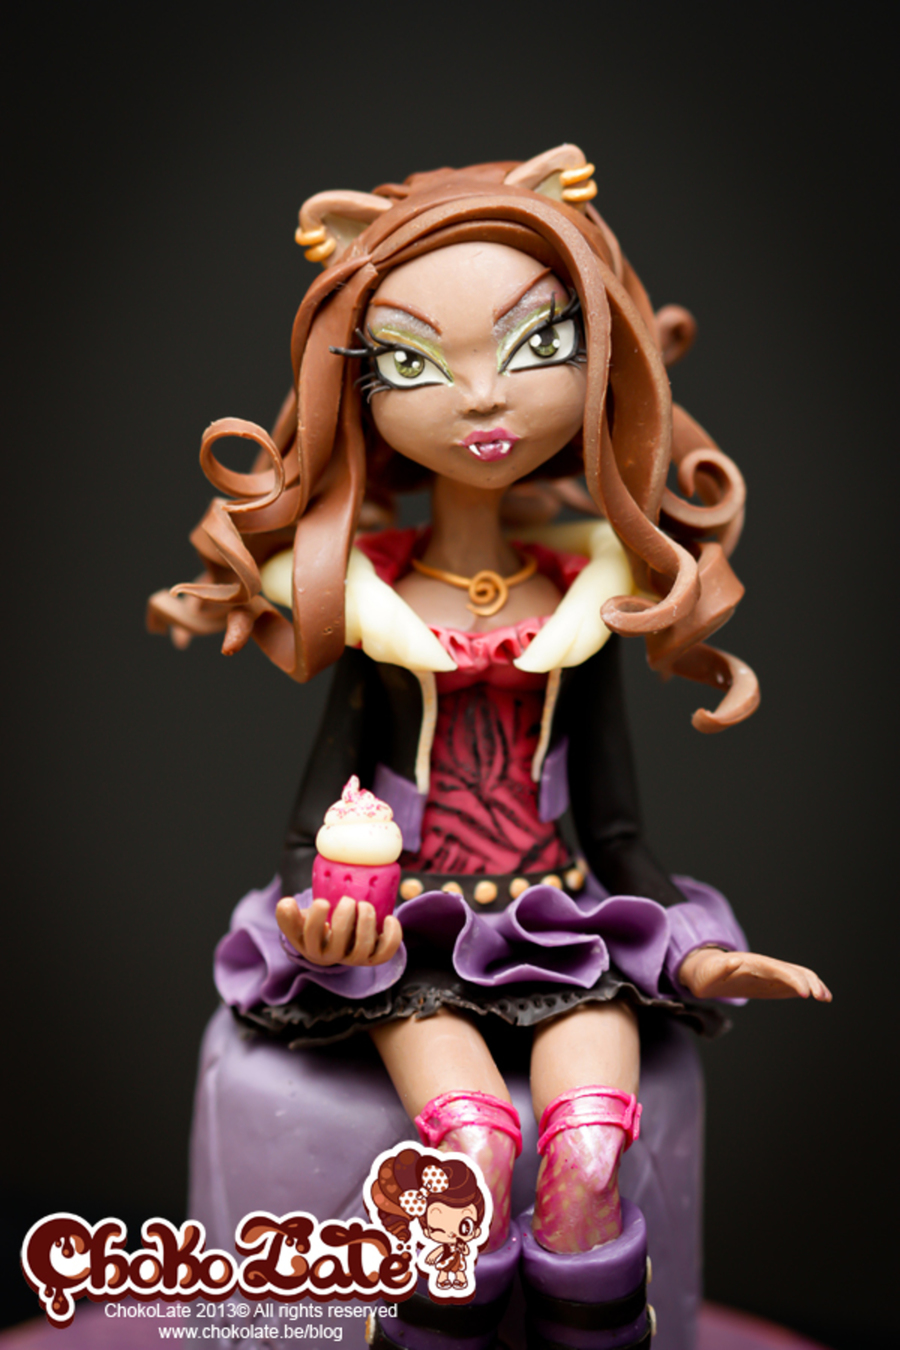 Pleasing Monster High Cake Topper Clawdeen Wolf Cakecentral Com Personalised Birthday Cards Beptaeletsinfo